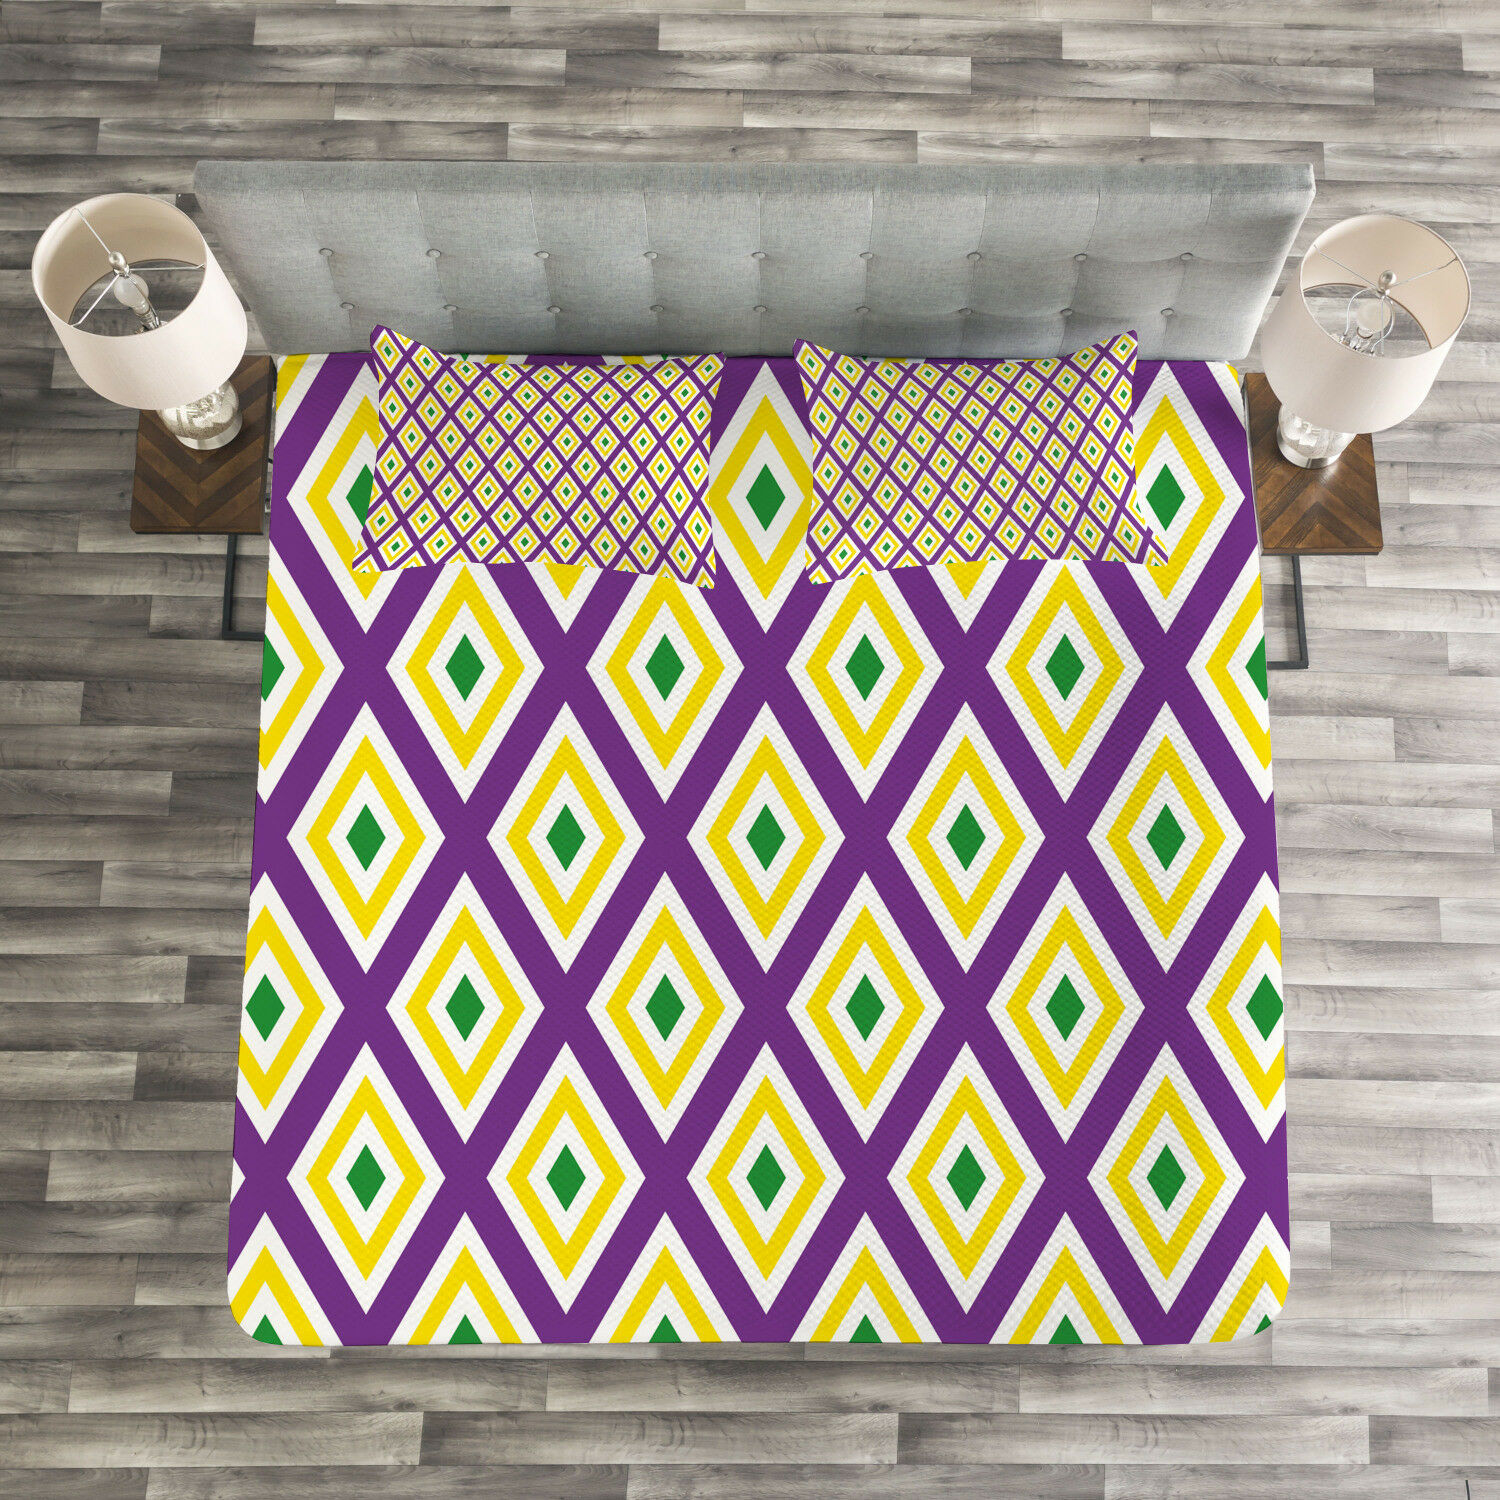 Mardi Gras Quilted Bedspread & Pillow Shams Set, Traditional Carnival Print